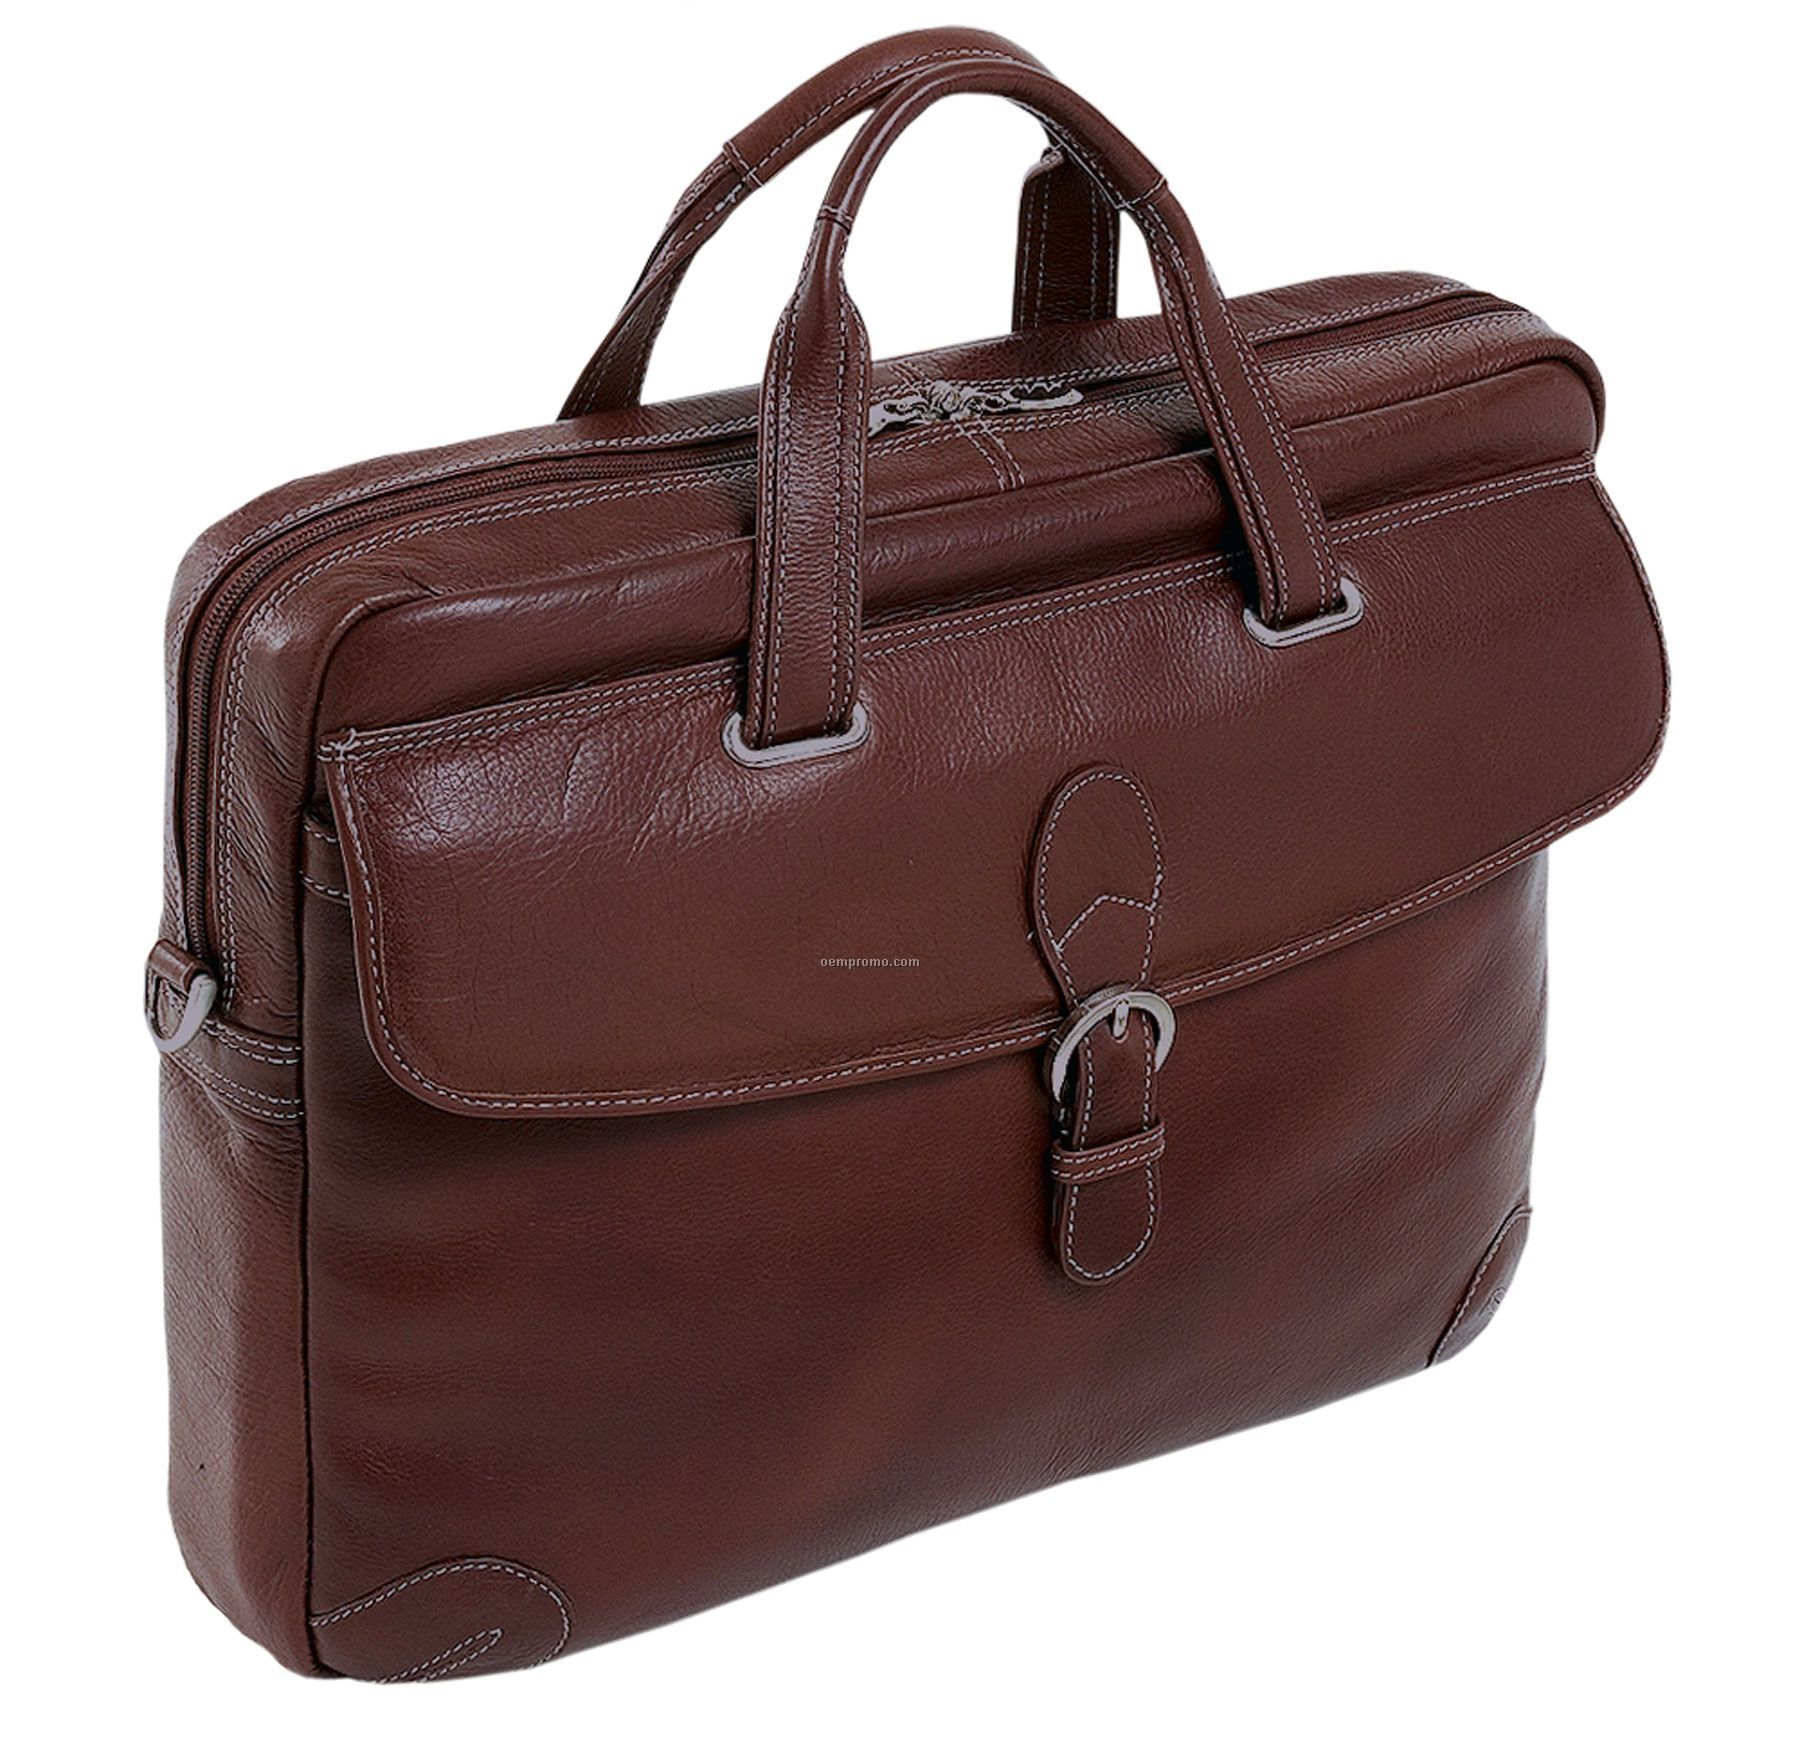 Fontanella Leather Large Laptop Brief - Cherry Red